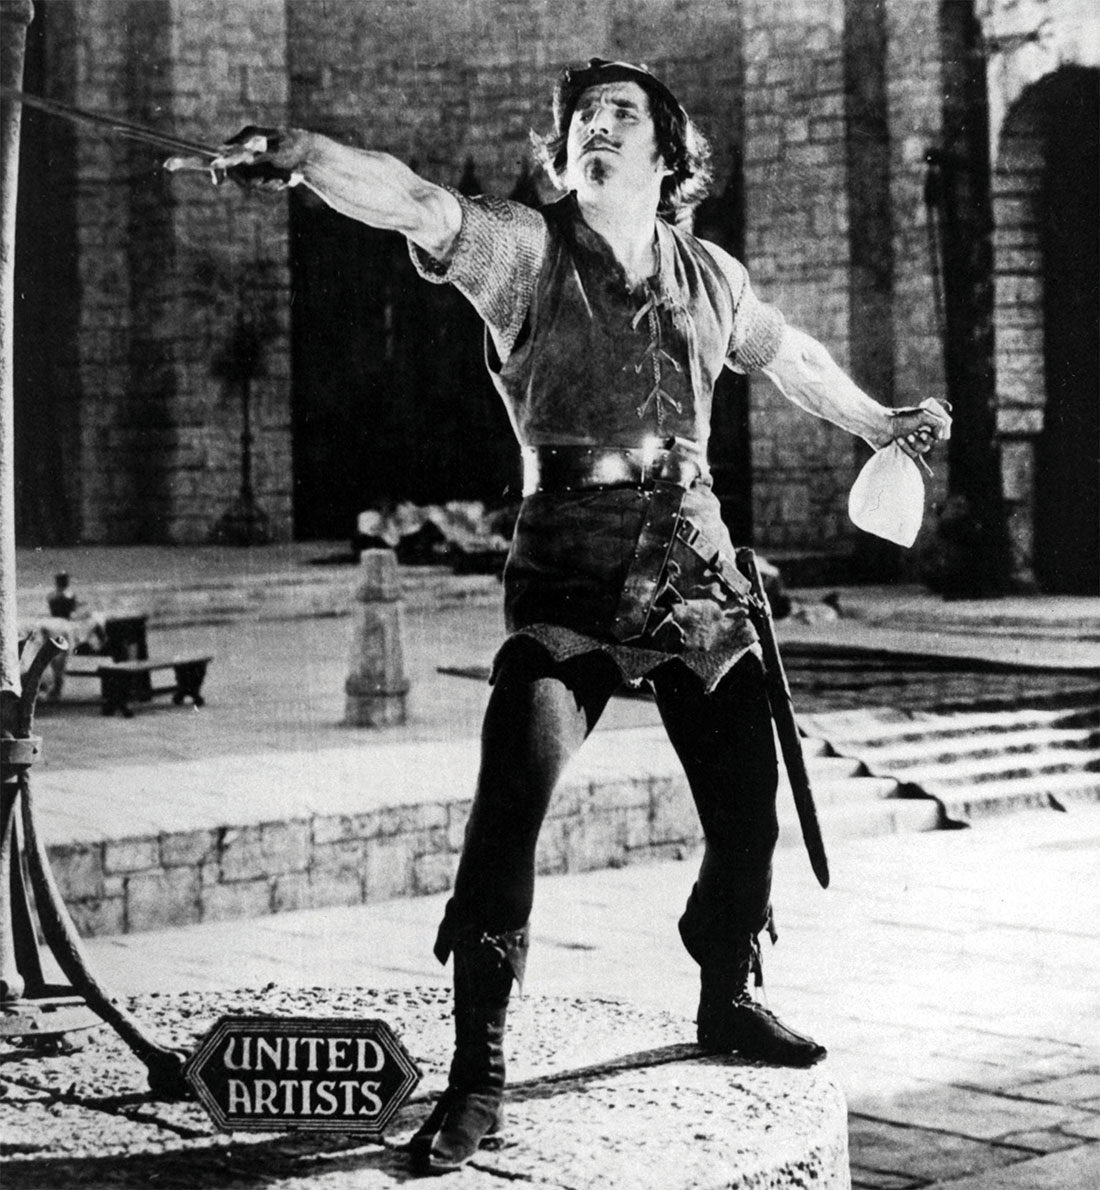 Buckled and swashed: Douglas Fairbanks as Robin Hood, 1922.